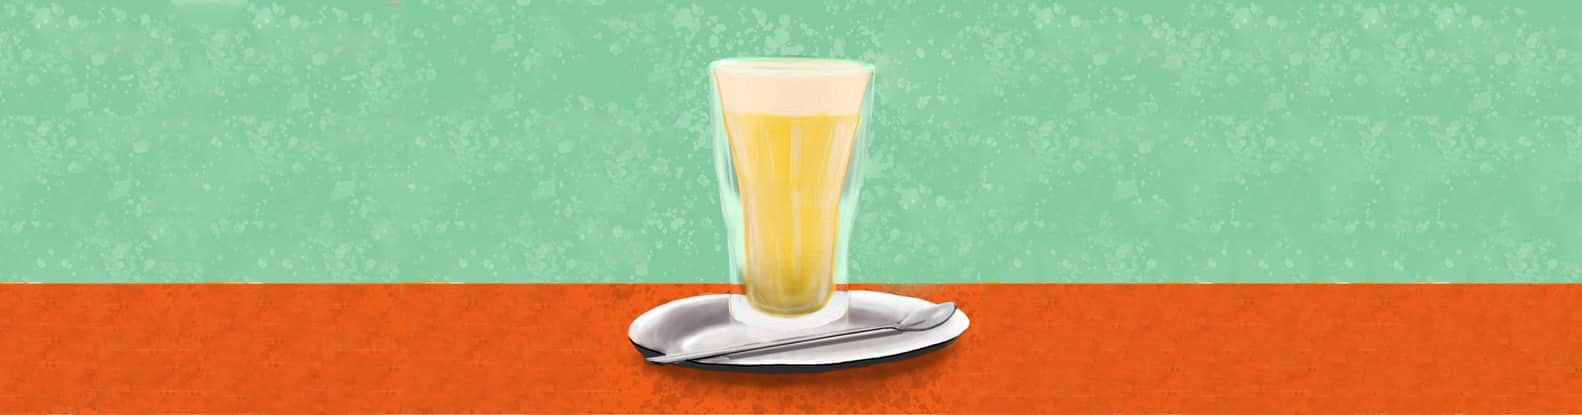 Benefits of Golden Milk and how to make it